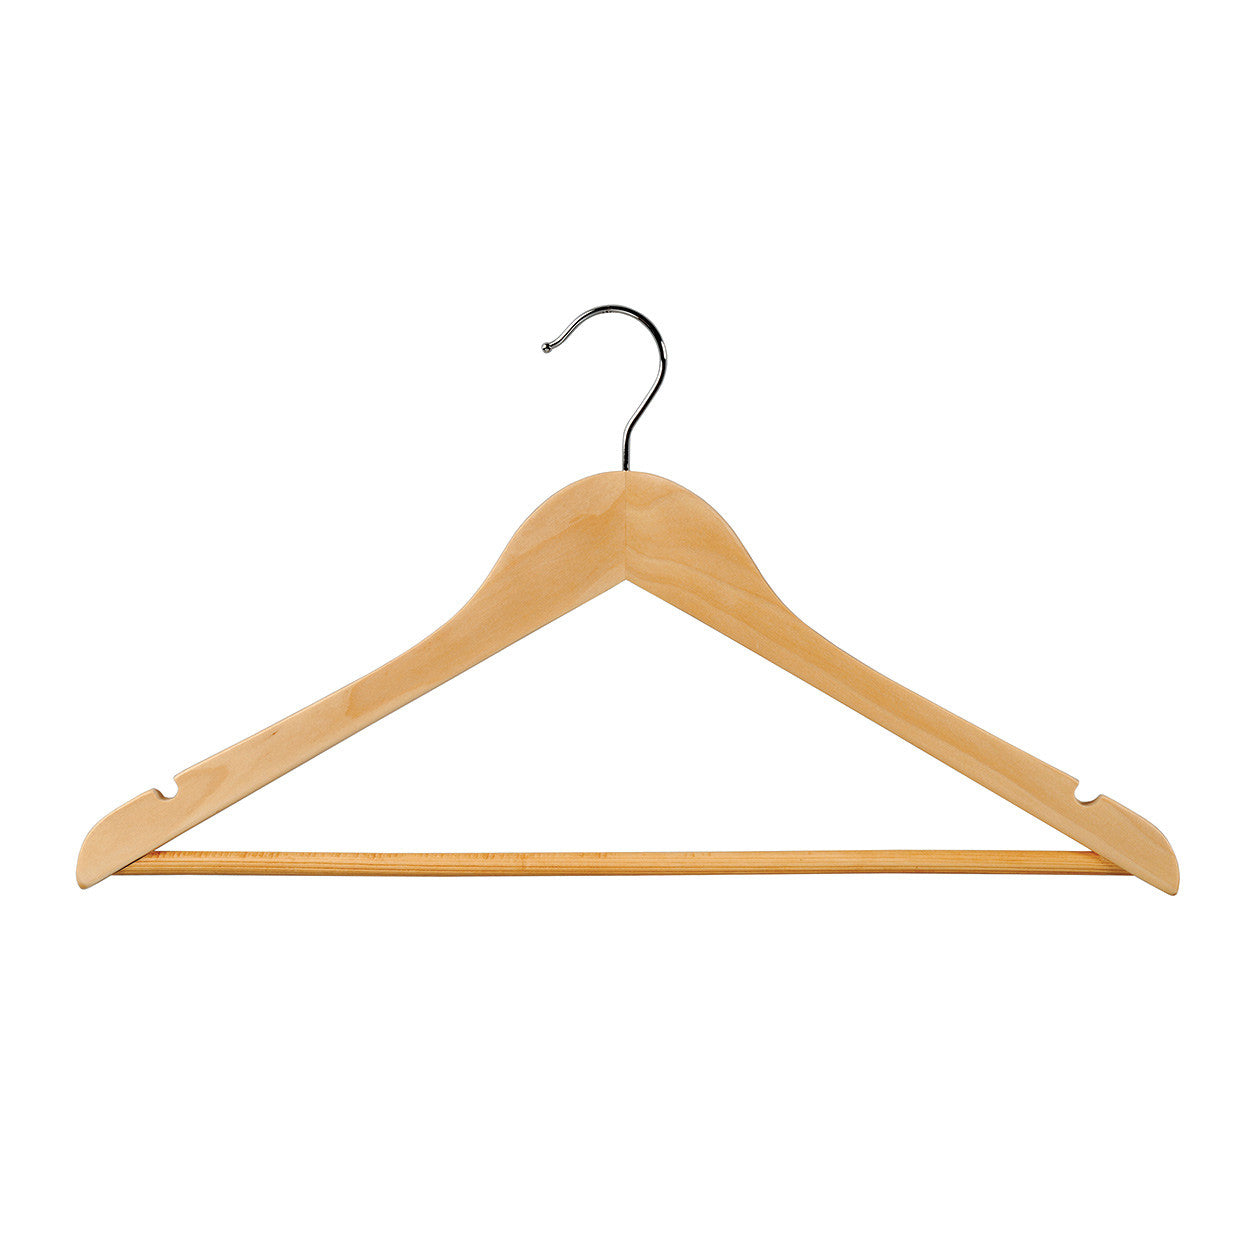 Beech Wooden hanger with notches & rail 440 W x 14 mm Thick (Bundle of 10) H2630BH-10